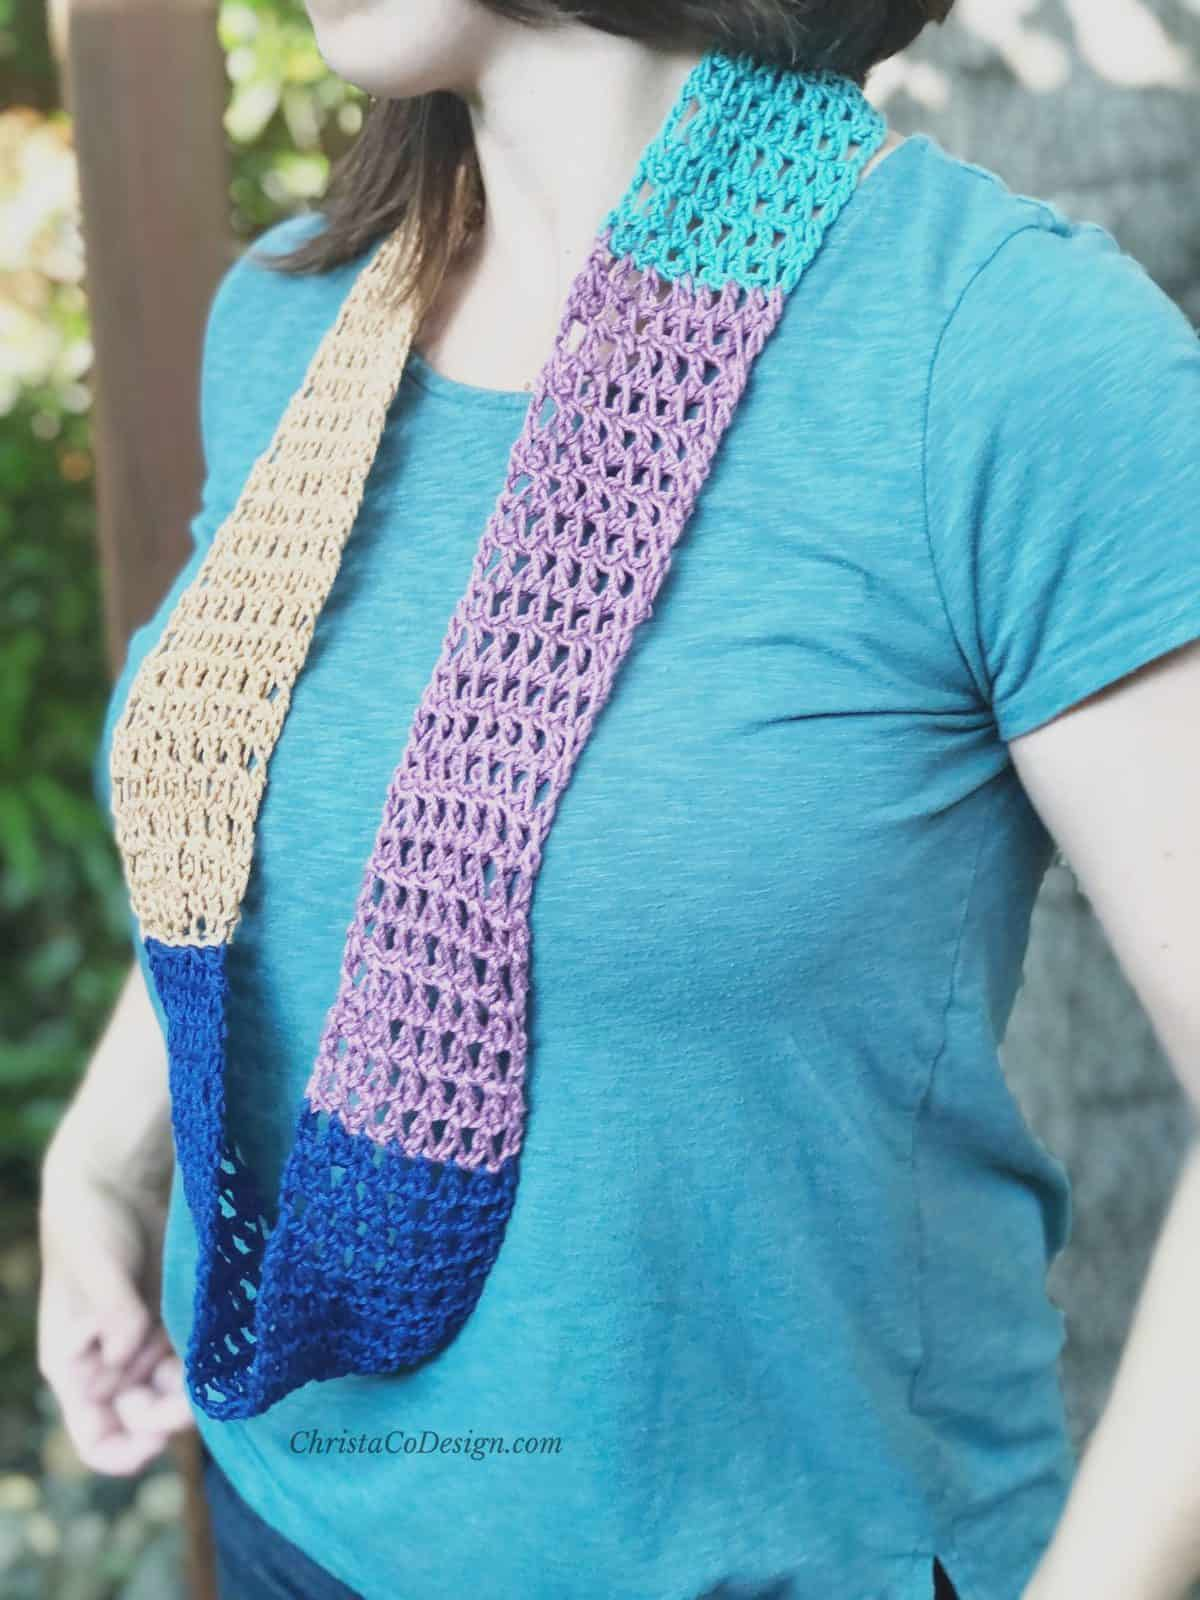 Light and lacy crochet cowl in blue and purple hanging long on woman.